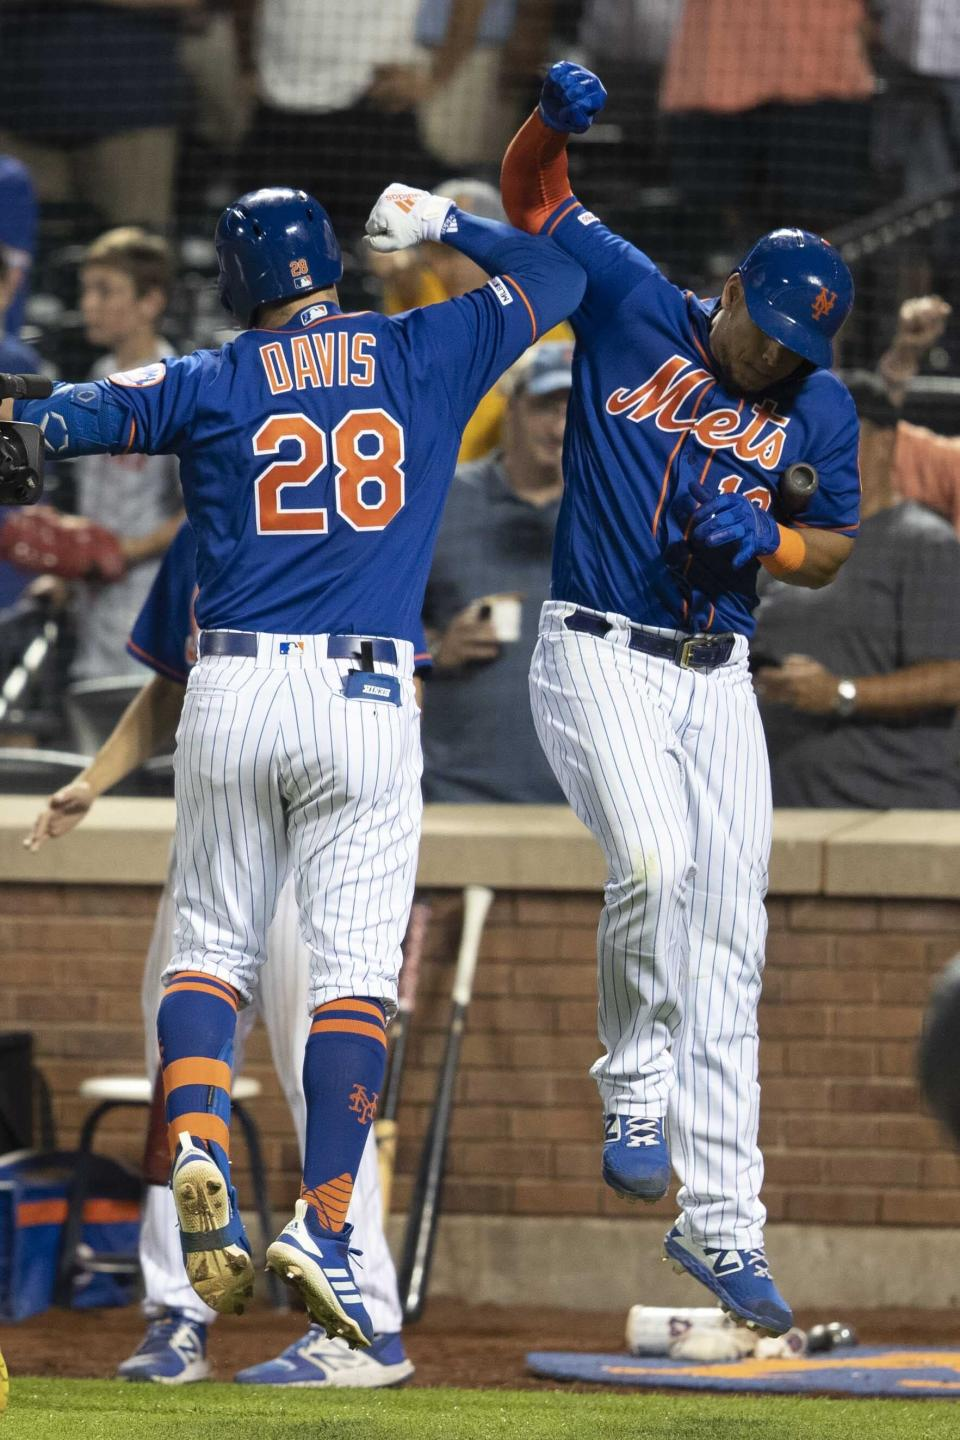 New York Mets' J.D. Davis (28) celebrates with Juan Lagares after hitting a home run in the seventh inning of the second game of a baseball doubleheader against the Miami Marlins, Monday, Aug. 5, 2019, in New York. (AP Photo/Mary Altaffer)